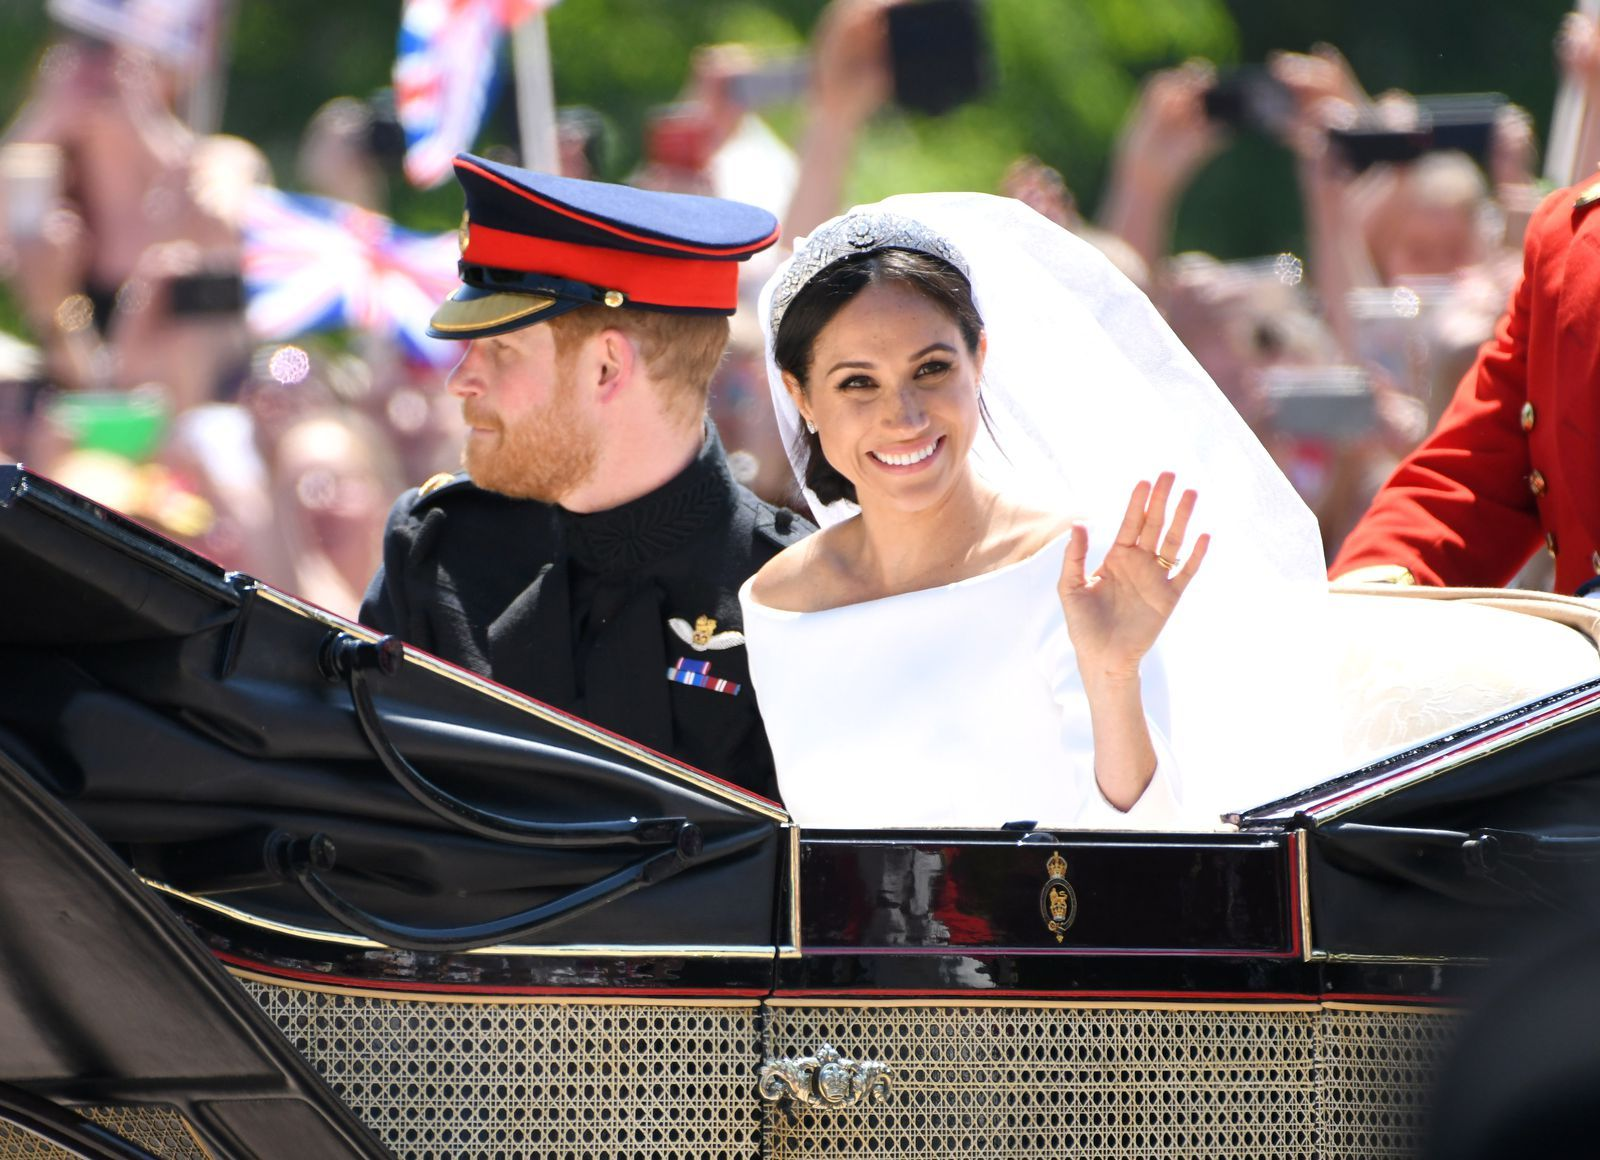 How To Get An Awesome Plaid Lawn, Like The One At The Royal Wedding is part of lawn Mowing Queen Of - The grass is always greener on the Windsor Castle side of the fence  But not for long